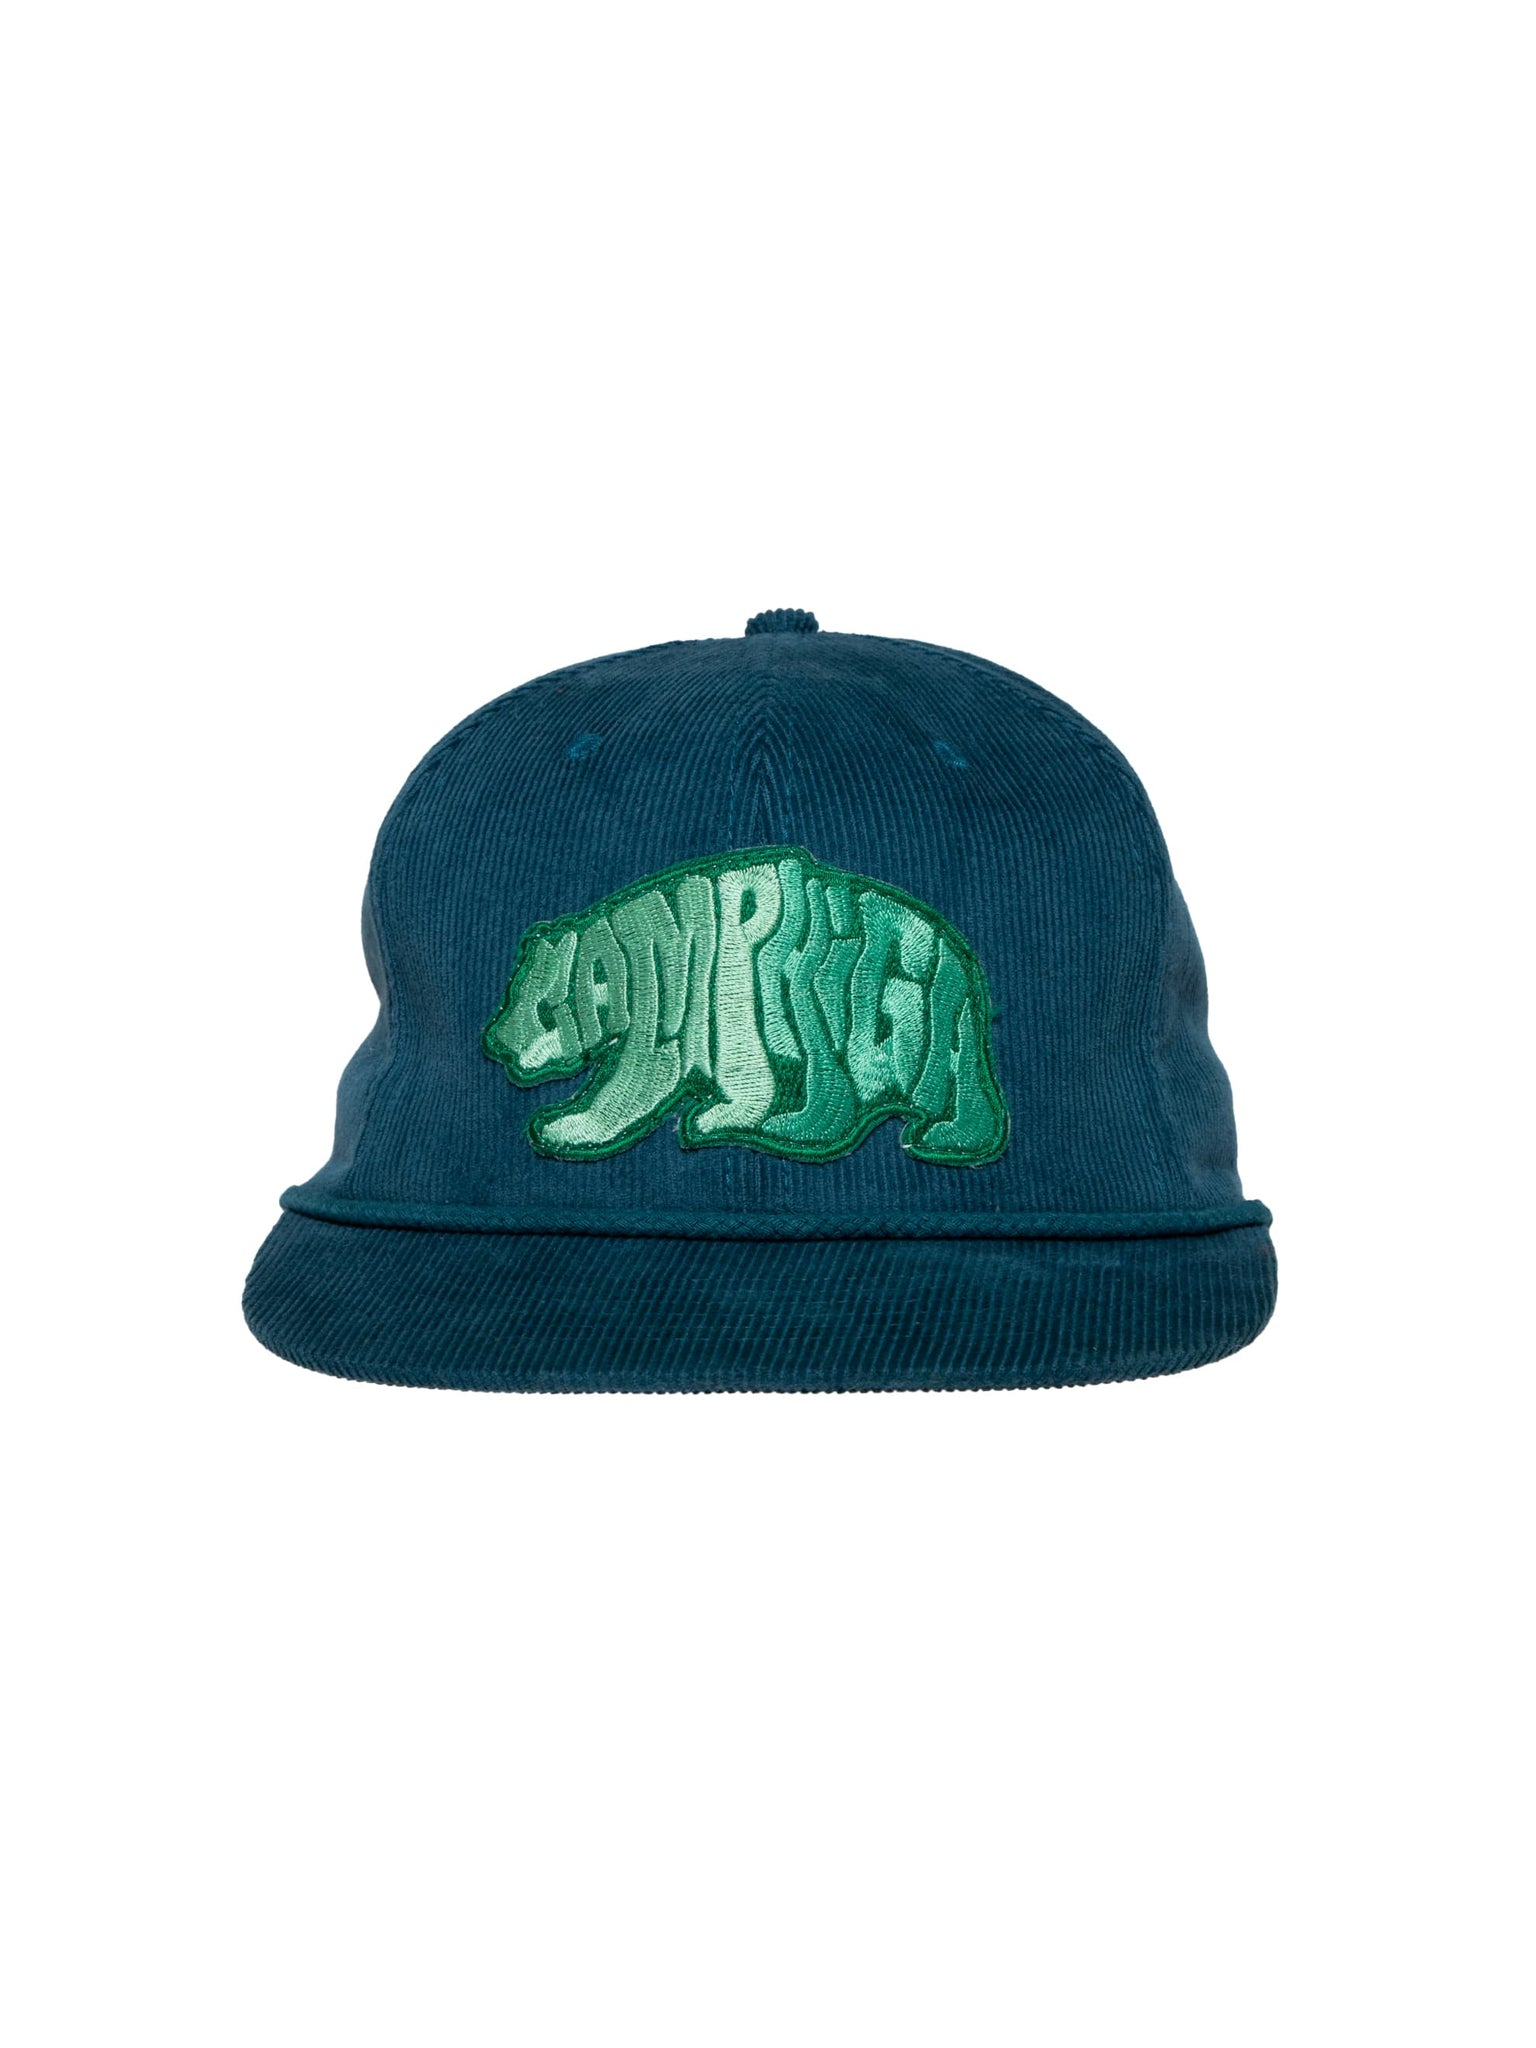 Camp High Blue Cali Bear Cord Cap